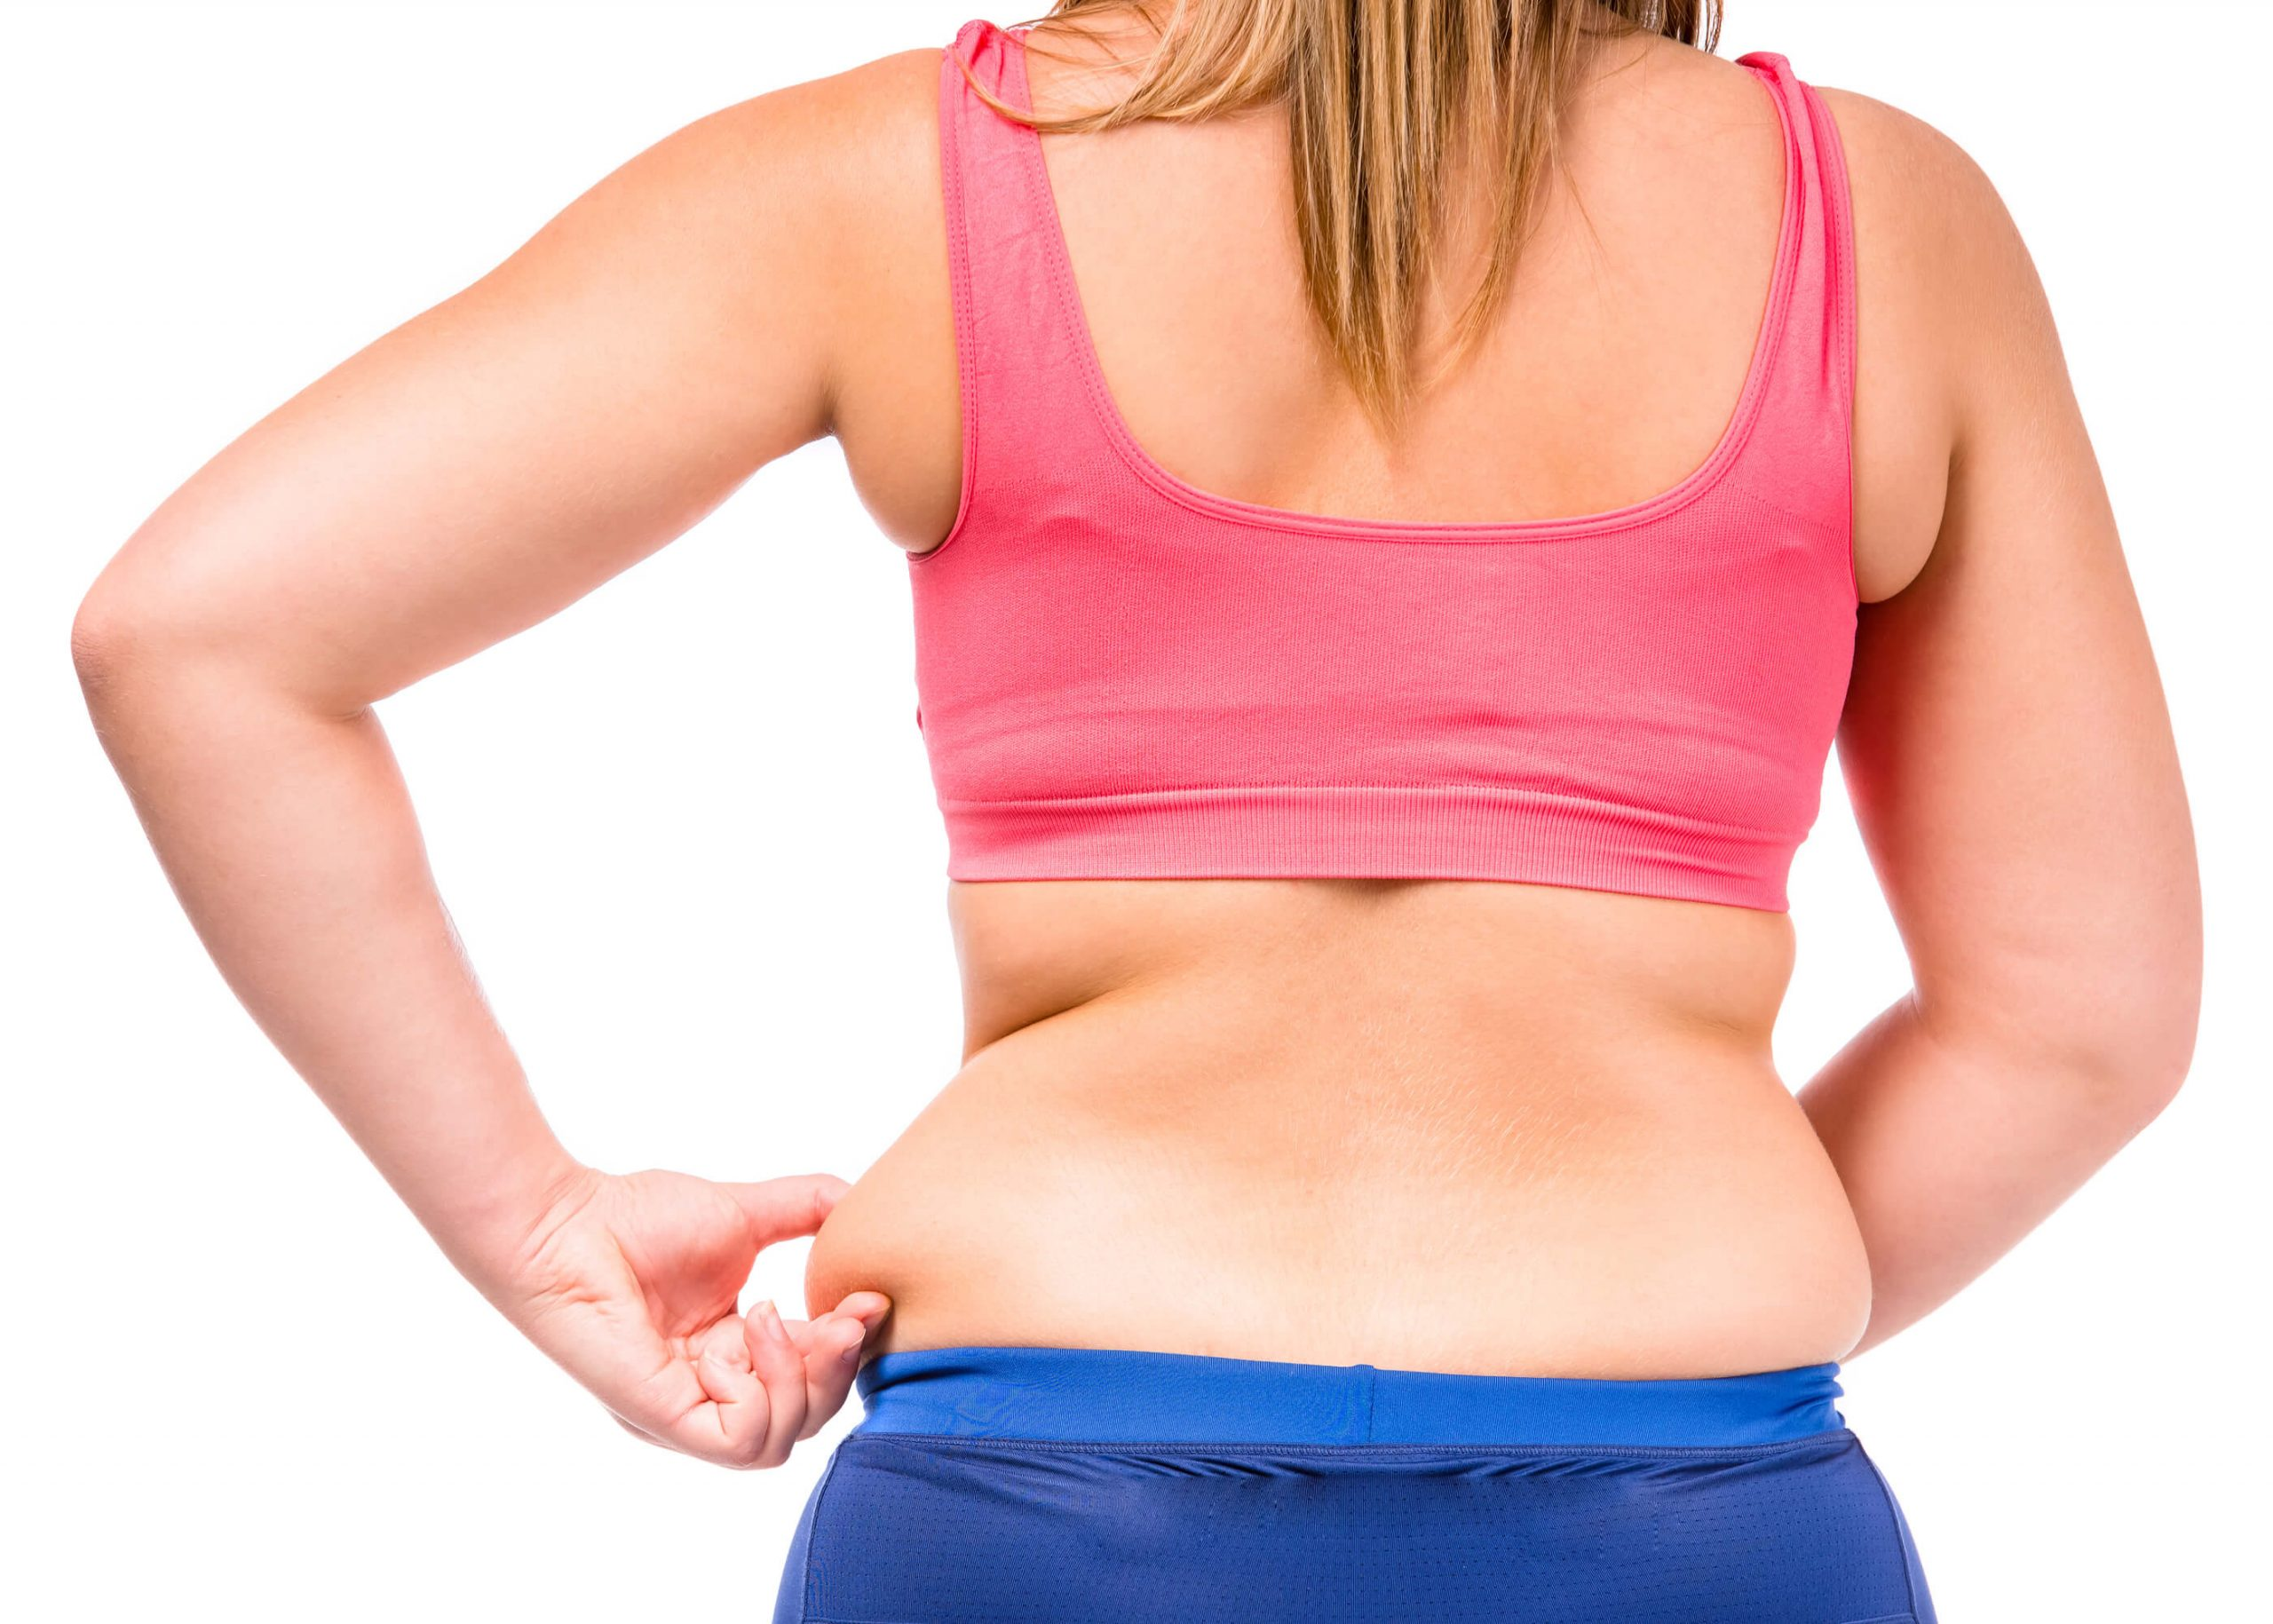 Removal of fats from back - Zty Health Plastic Surgery Turkey - Istanbul